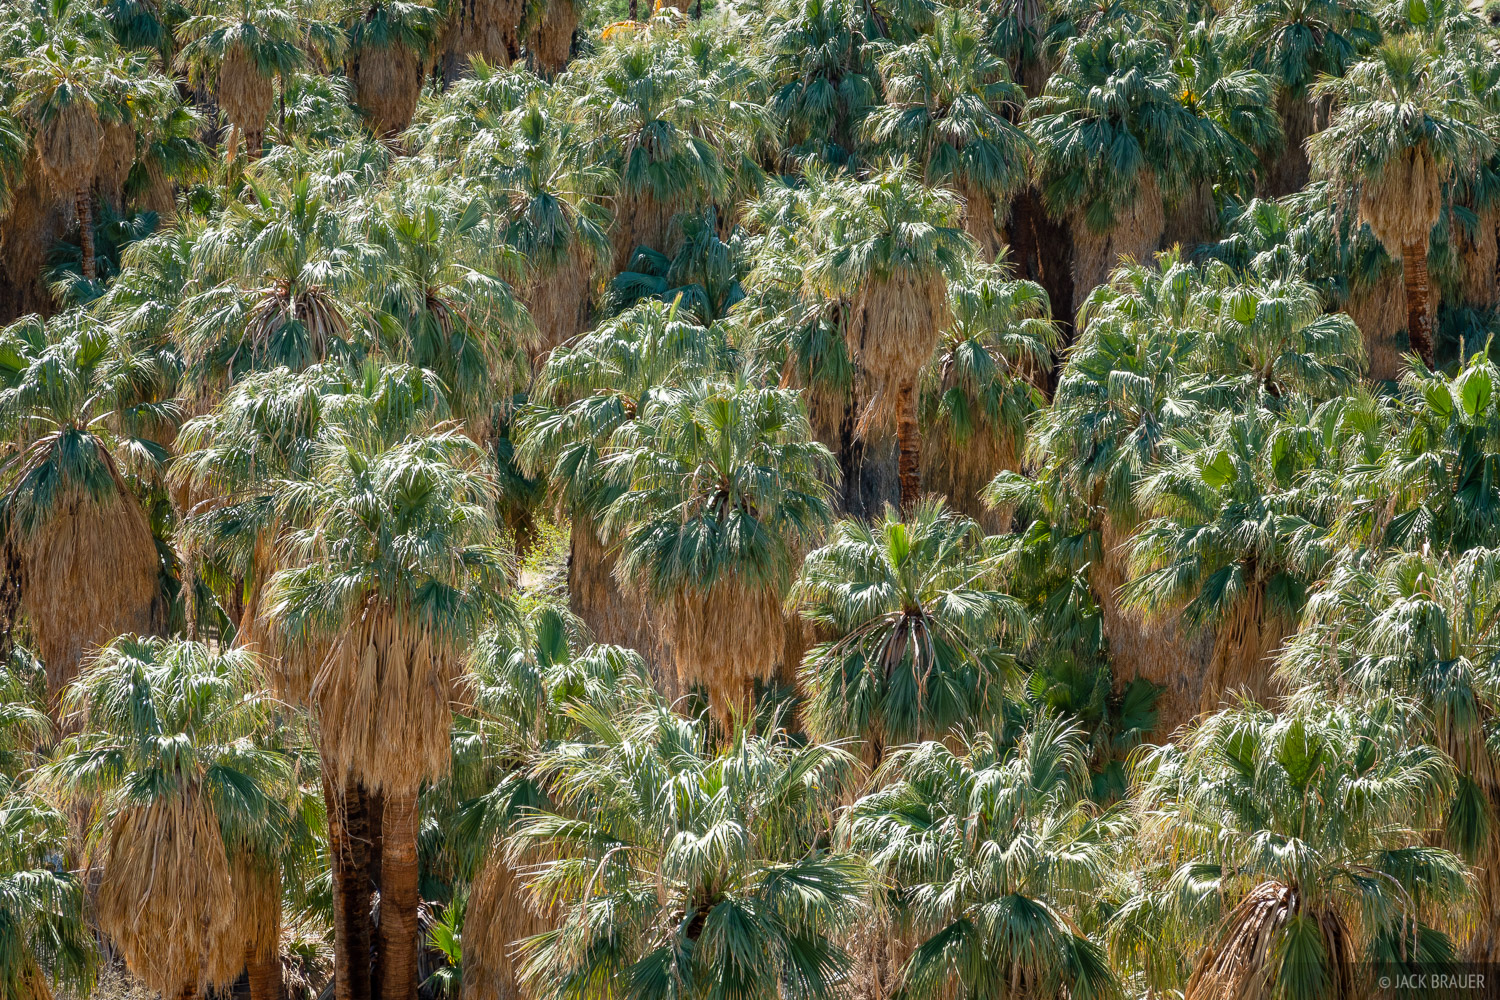 Native palms in Indian Canyon near Palm Springs, California.